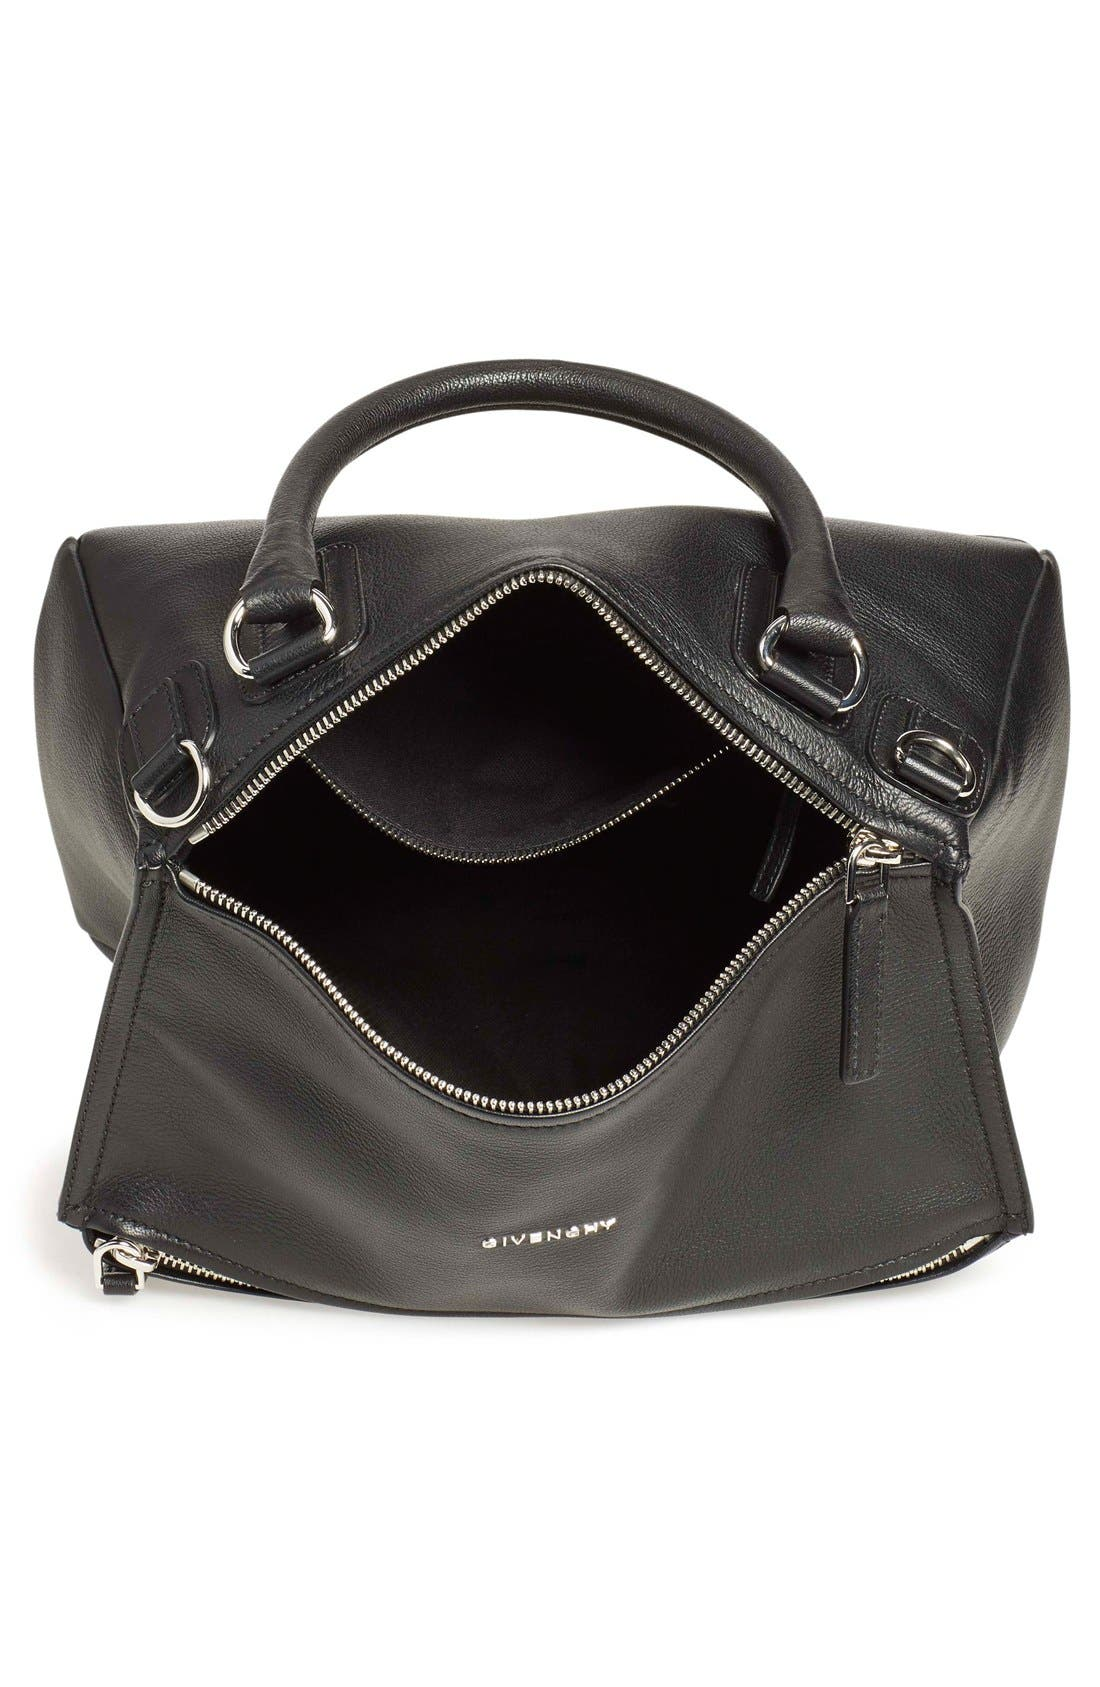 'Medium Pandora' Sugar Leather Satchel,                             Alternate thumbnail 4, color,                             BLACK